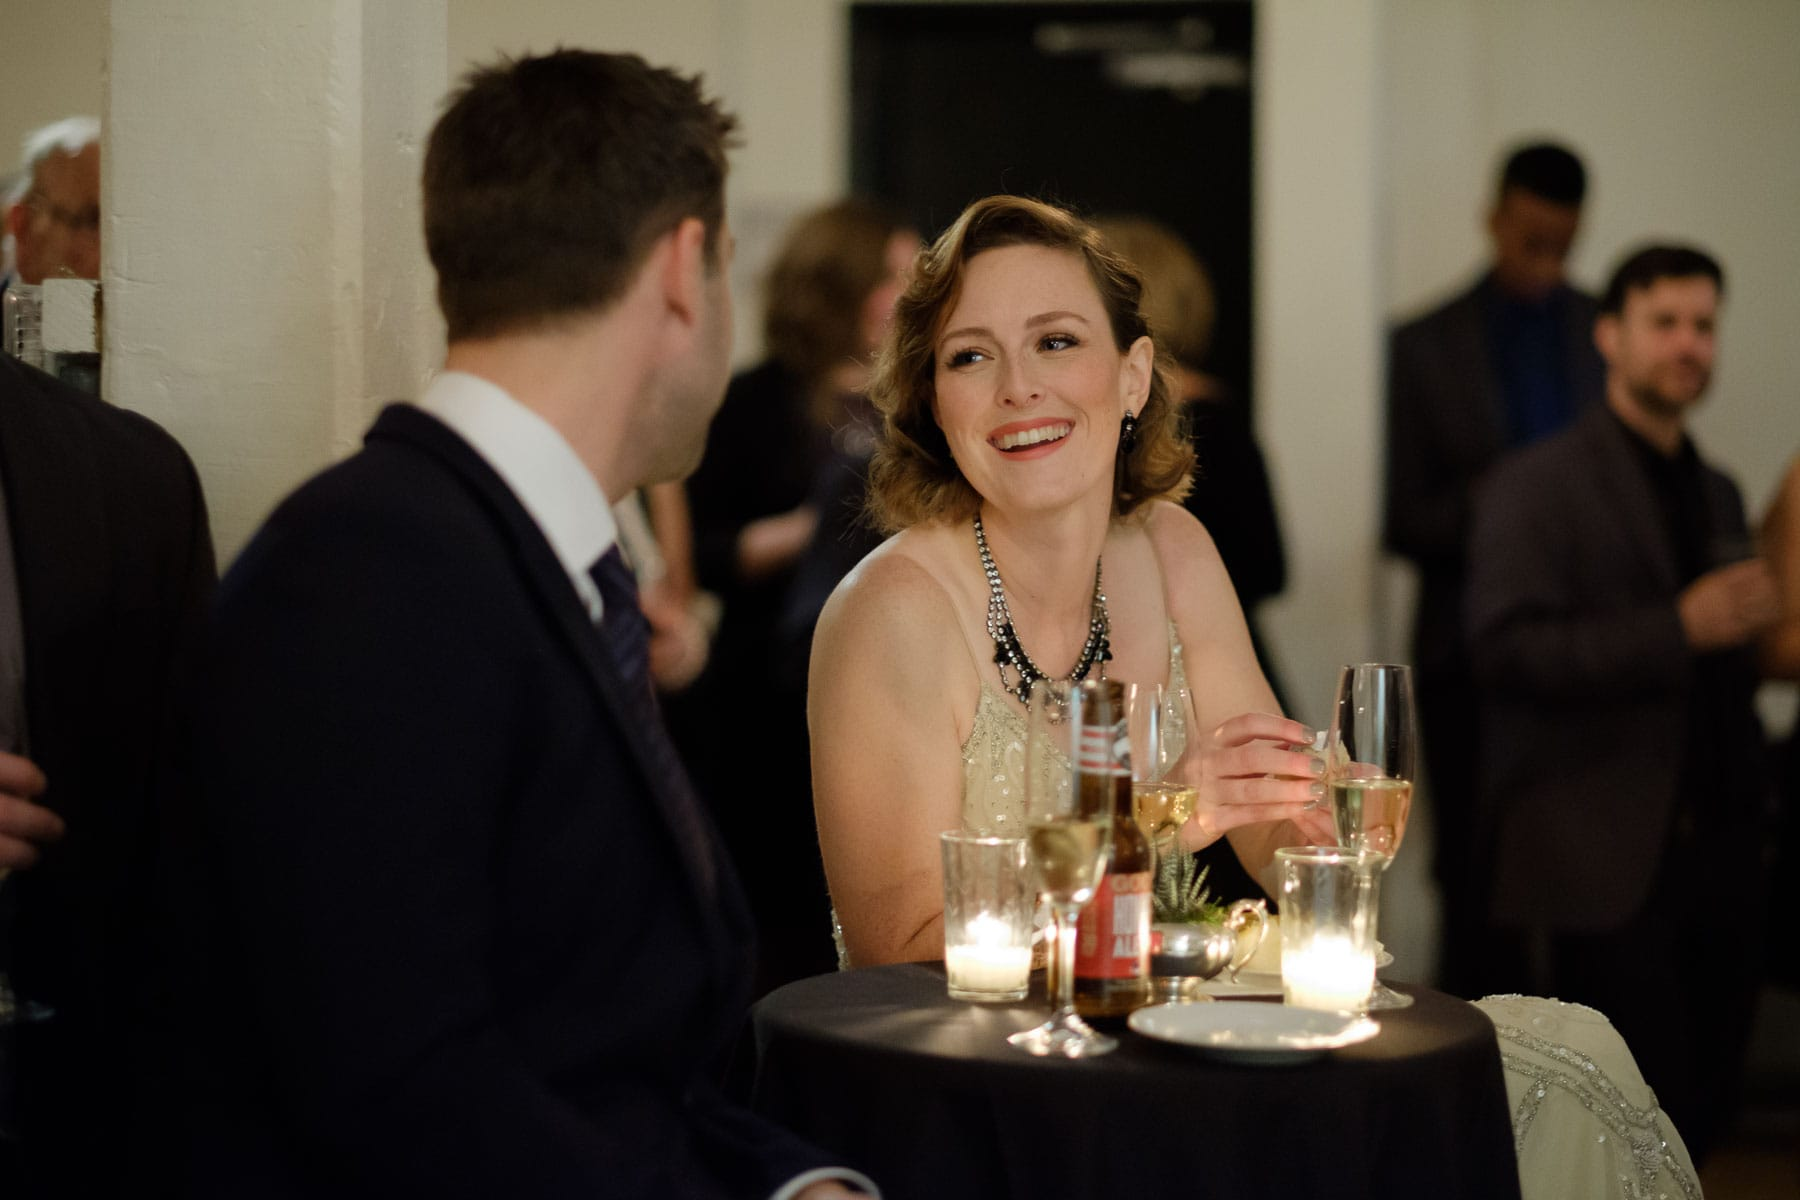 The bride is illuminated by candlelight, laughs to a guest during speech at The Burroughes building wedding.